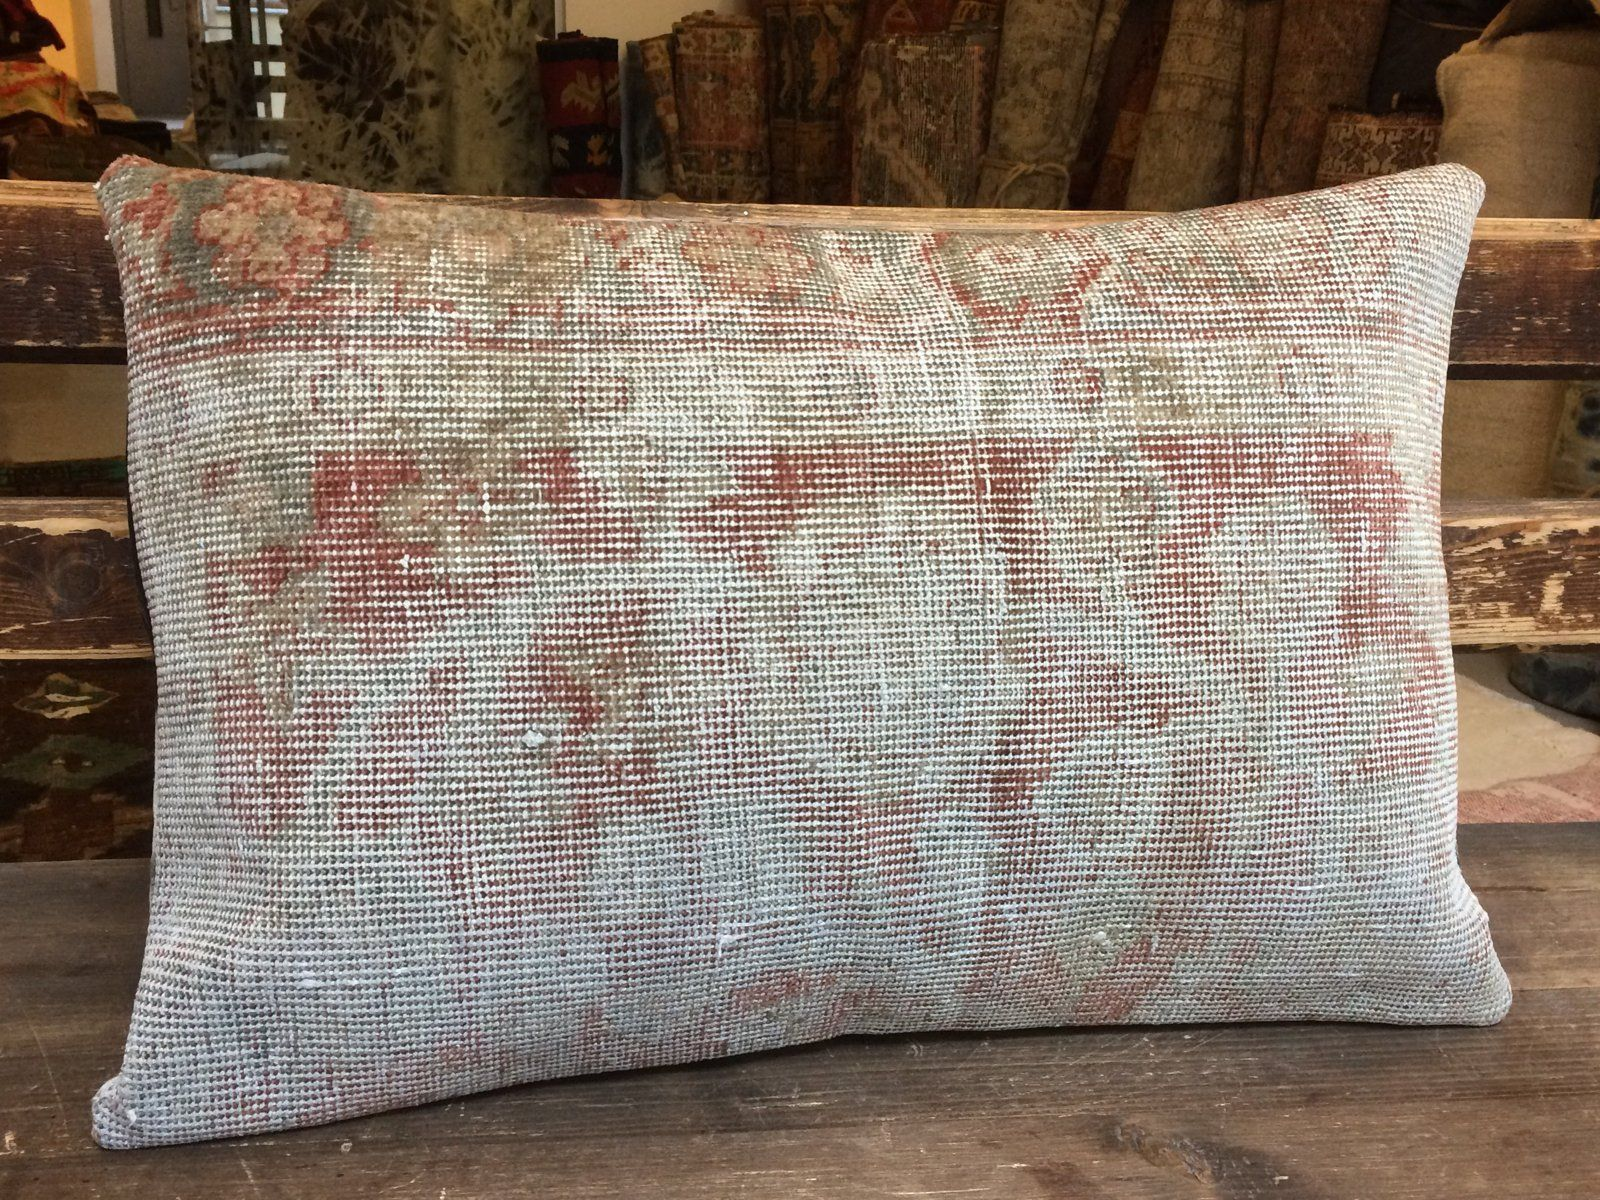 Red beige decorative kilim pillow covers 16x24 throw pillows boho decor turkish couch cushions bohemian wool large accent sofa pillow cases by carpethomeart